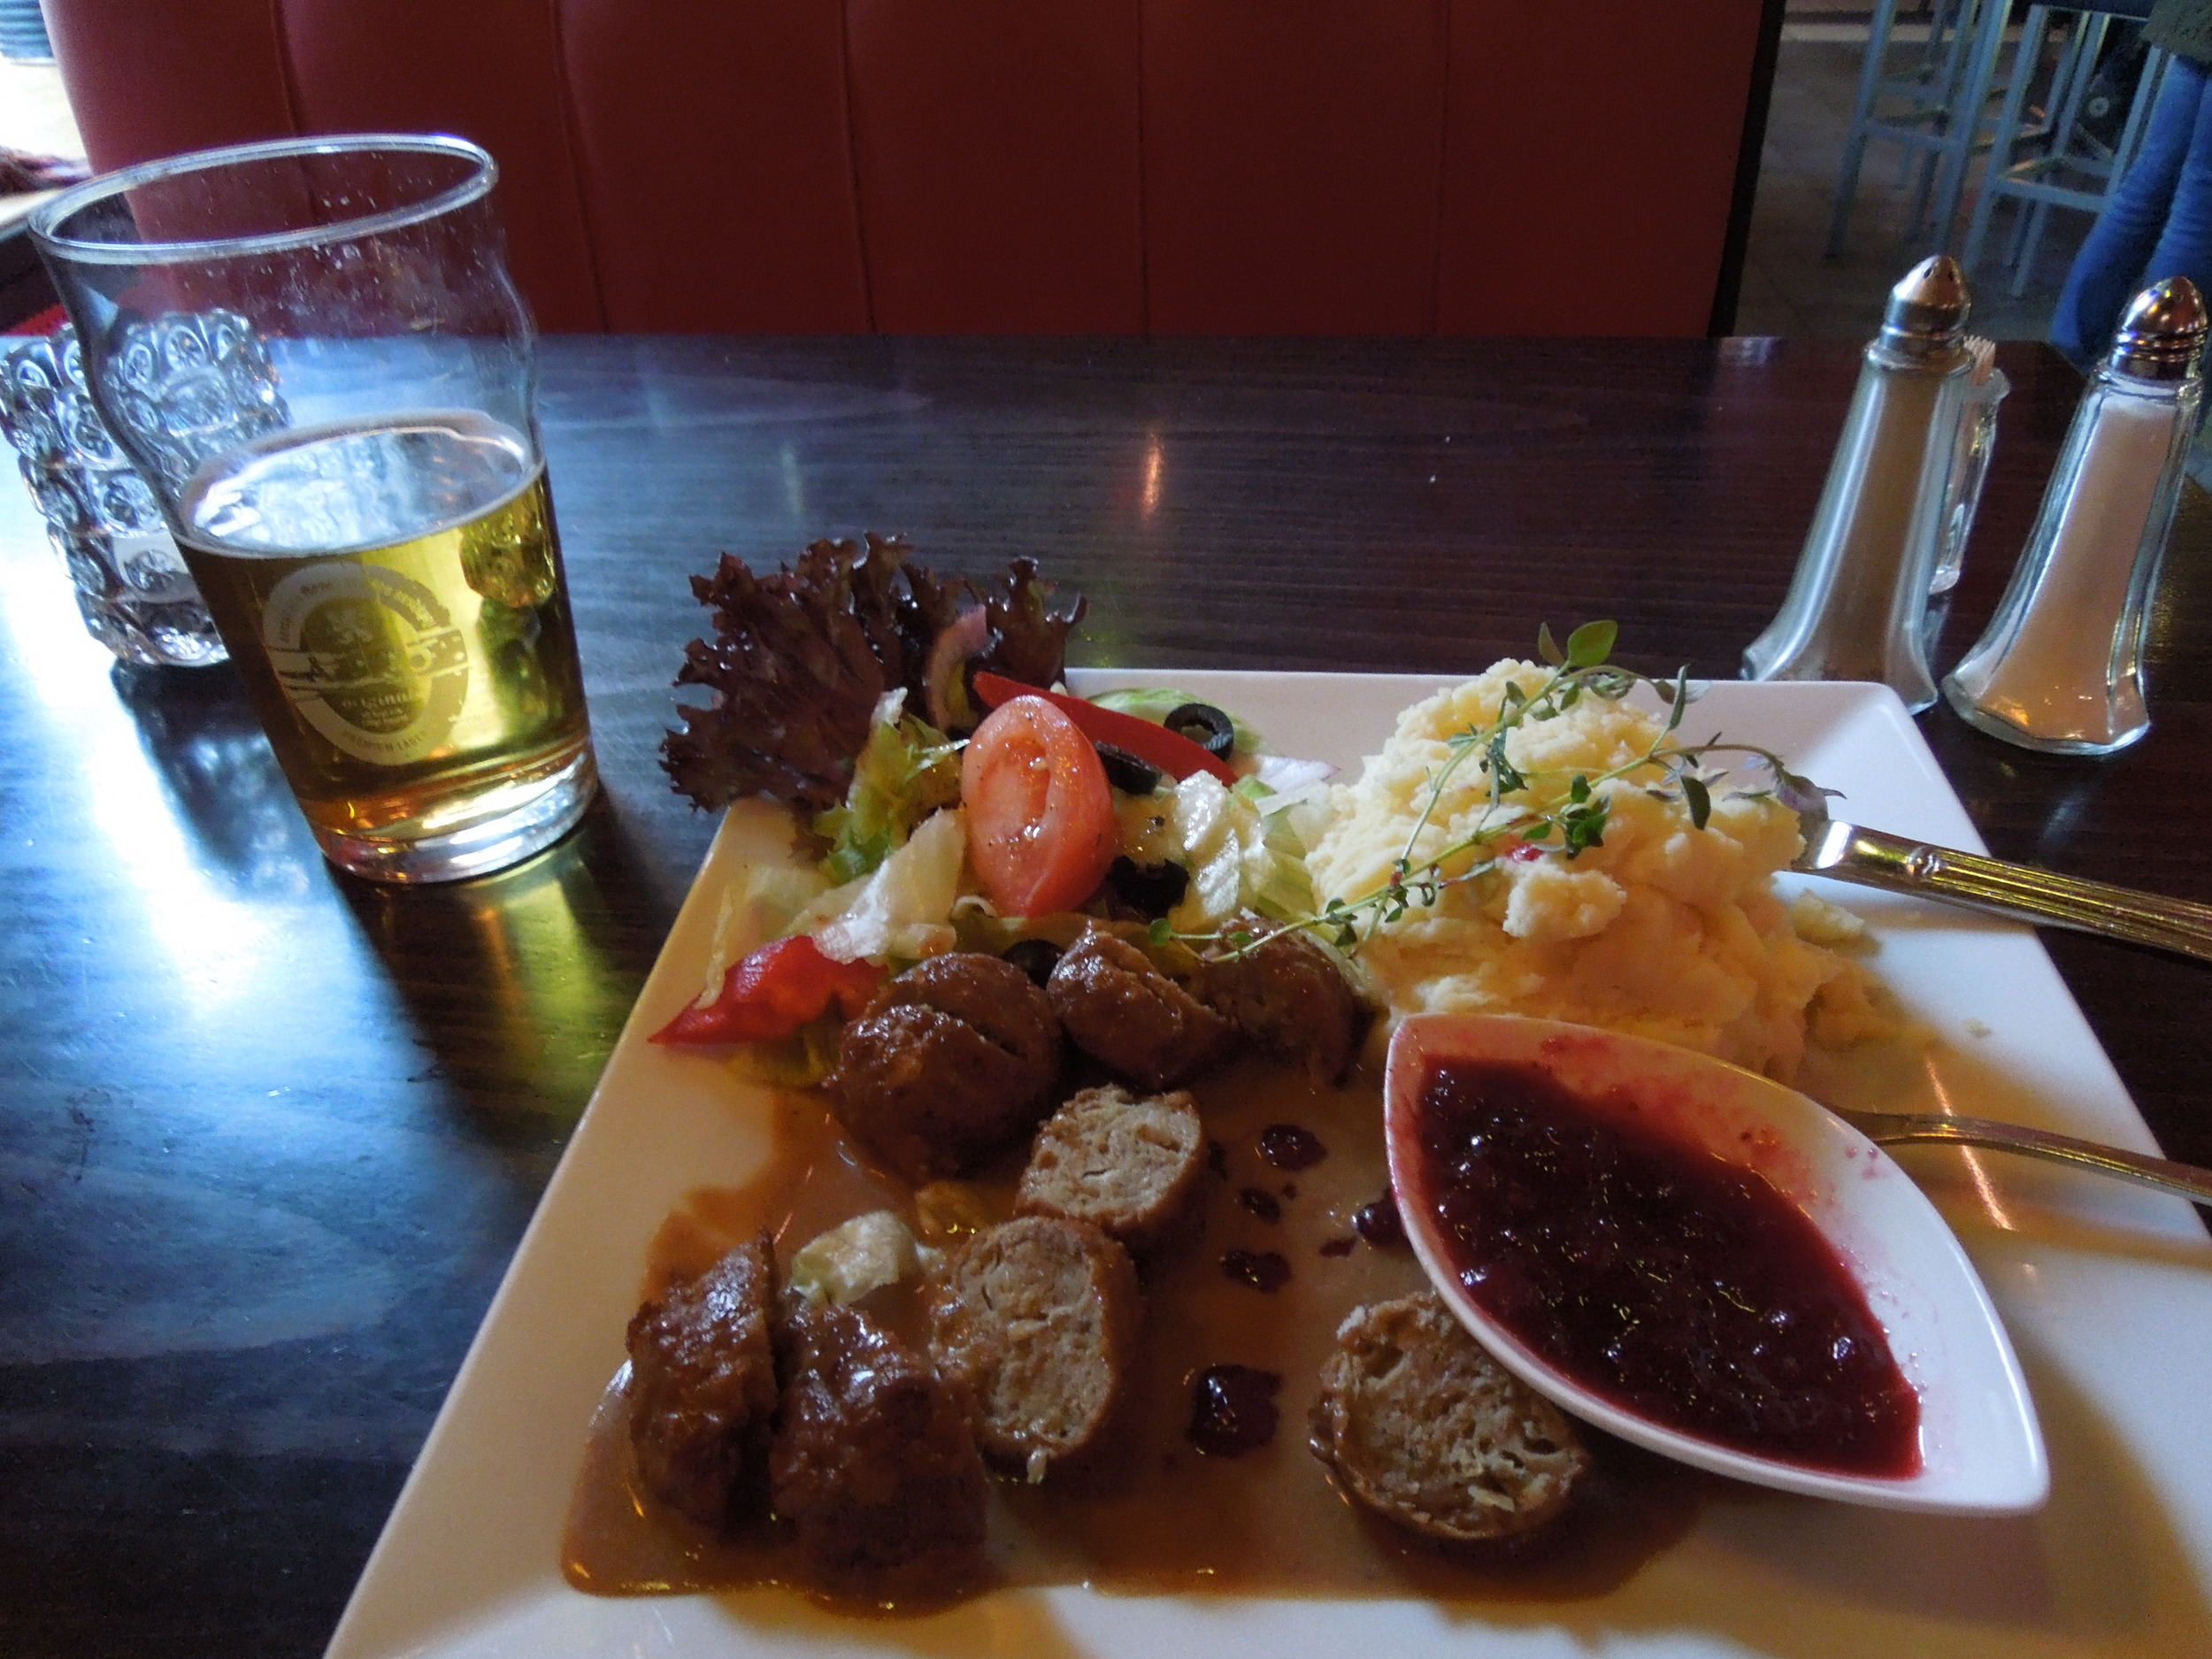 Swedish meatballs served with lingonberries, with Swedish beer Åbro to wash it all down